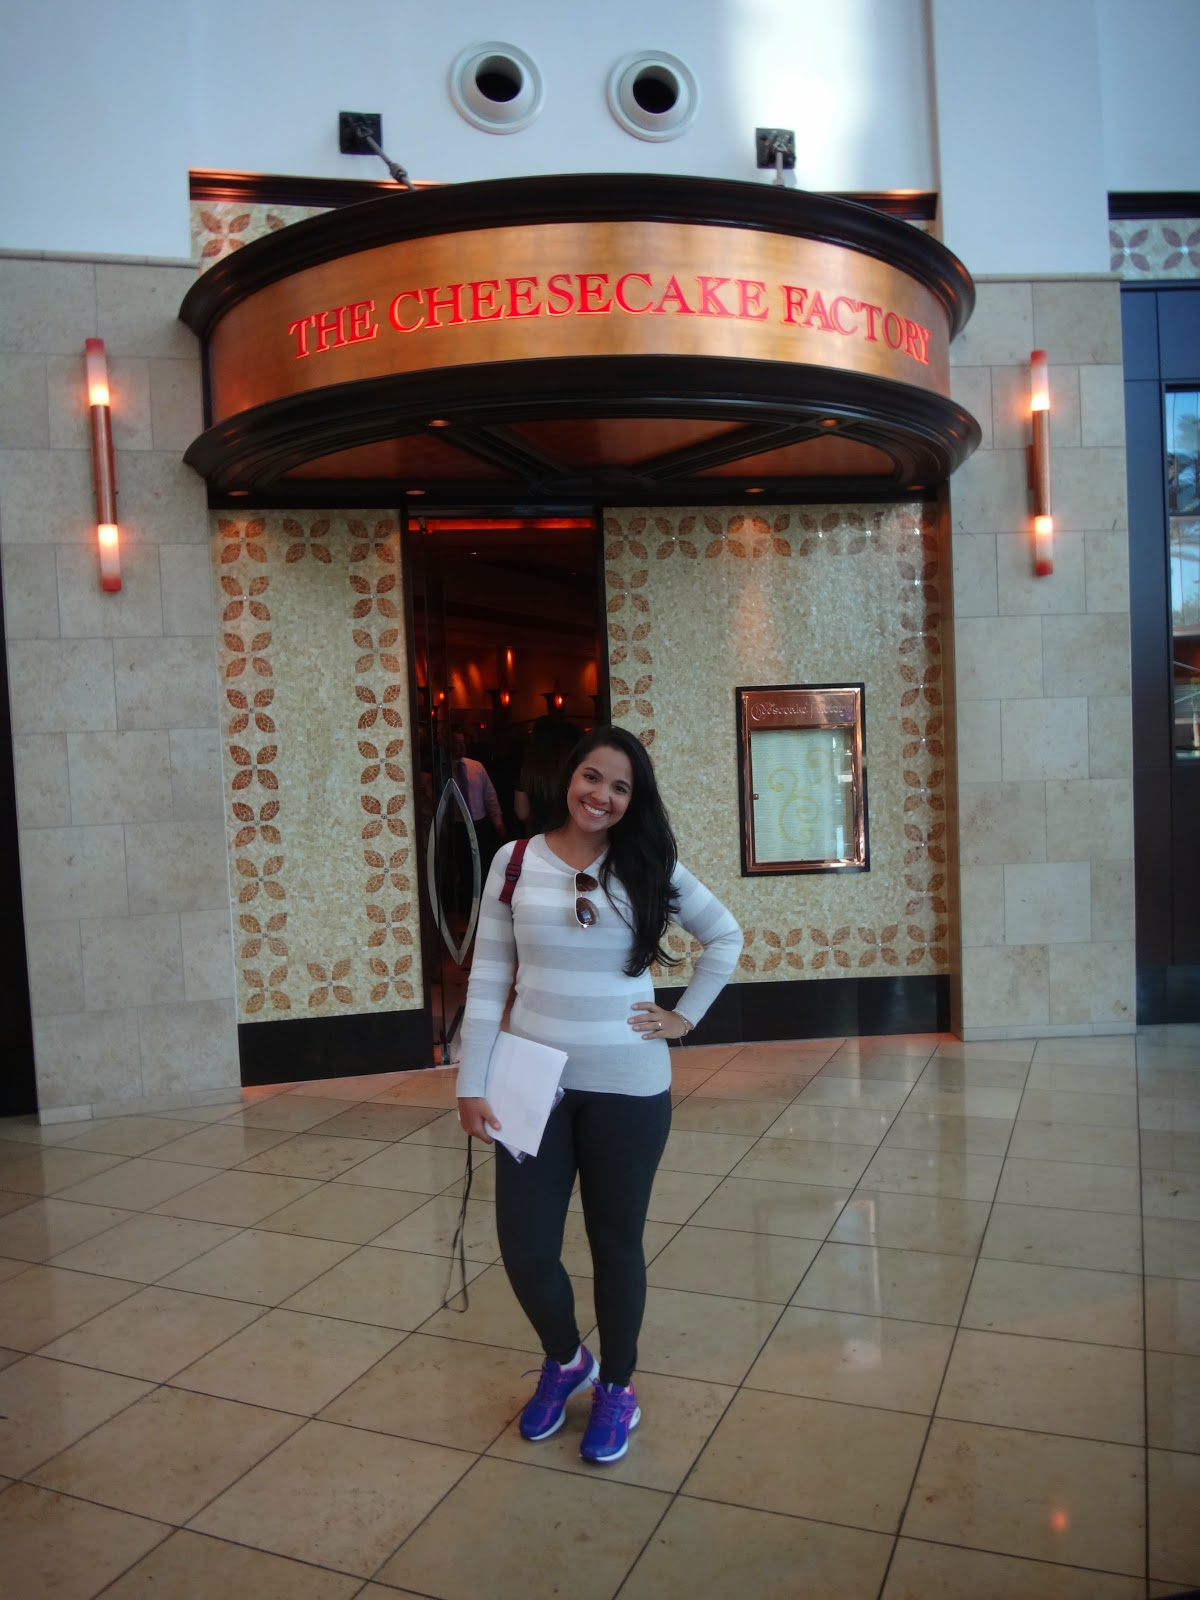 the cheese cake factory - millenia mall - orlando